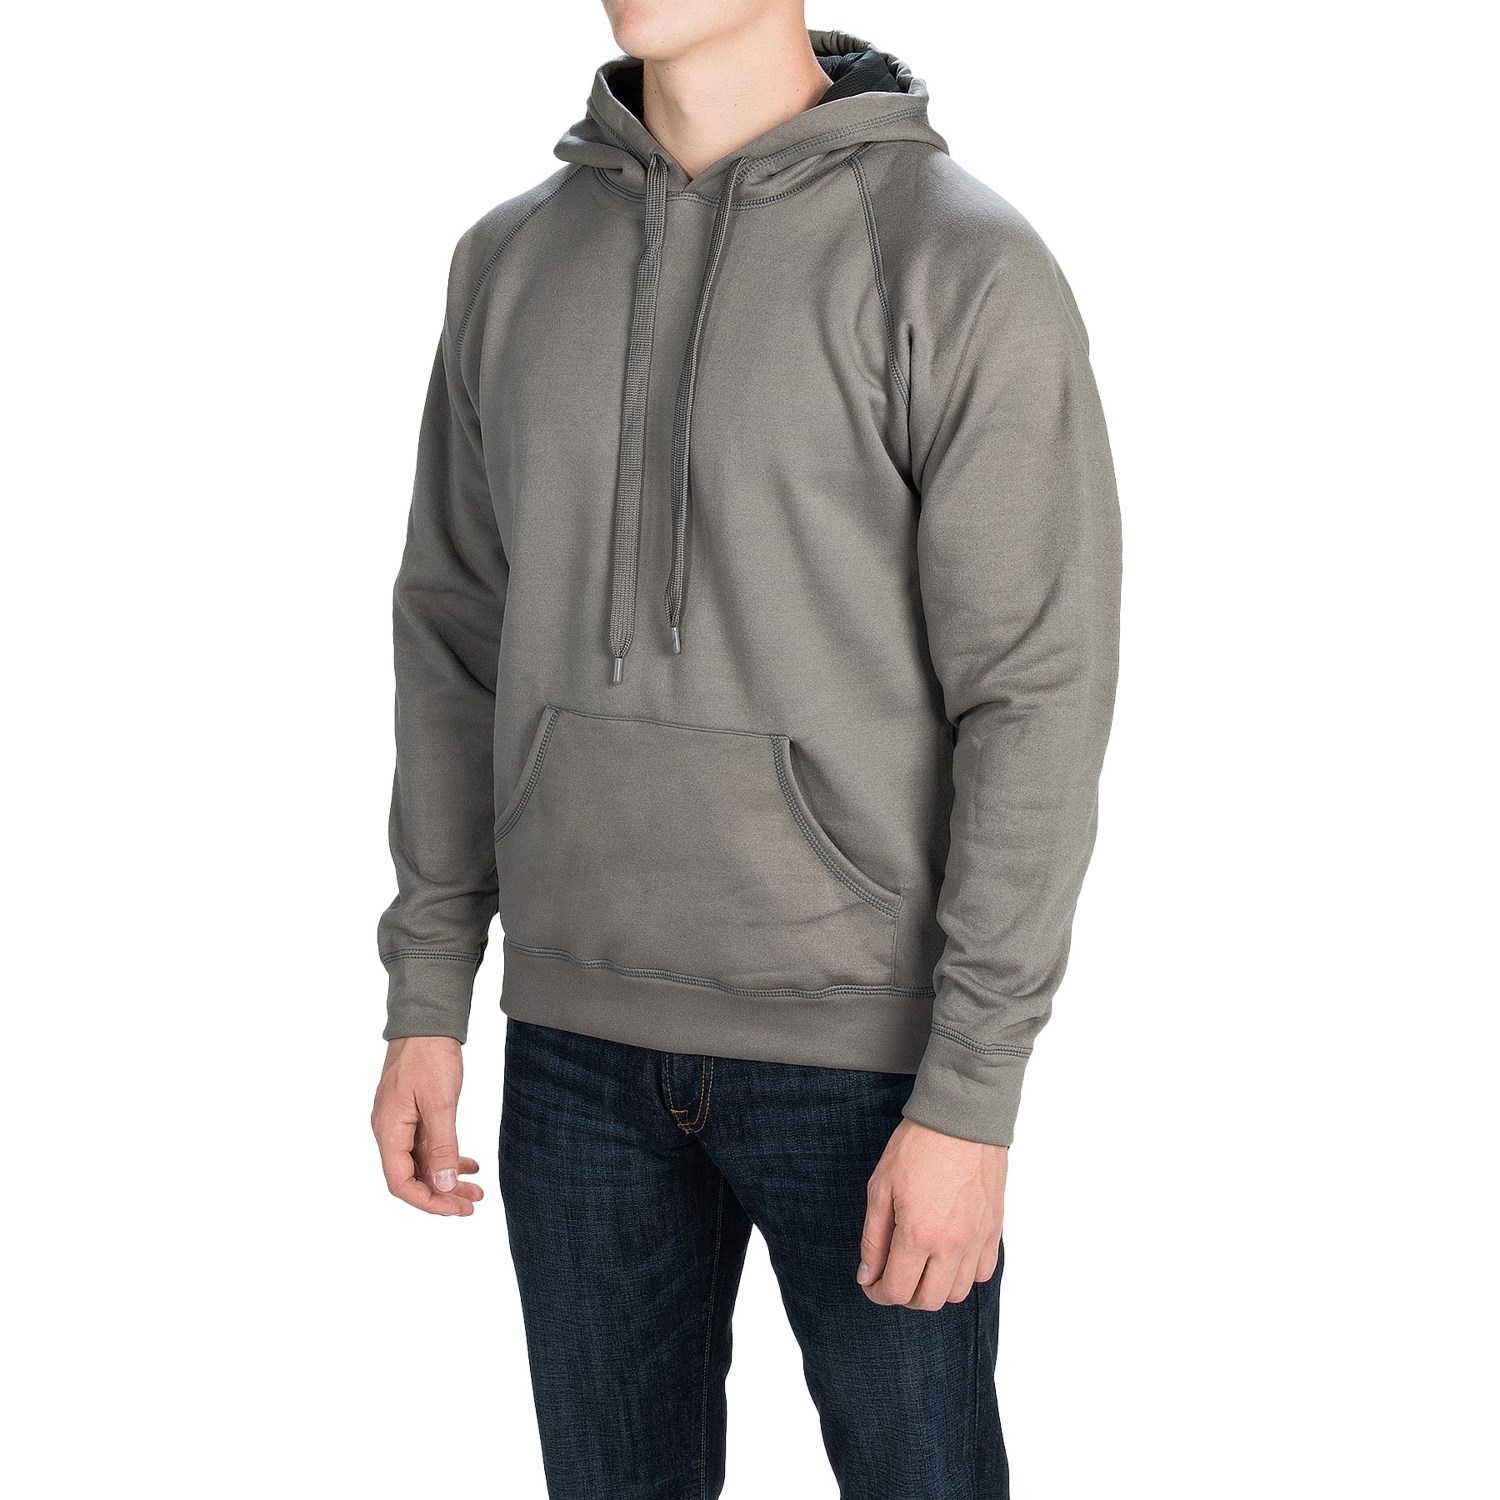 Submit Your Own Image · Point Sportswear Fleece Hoodie